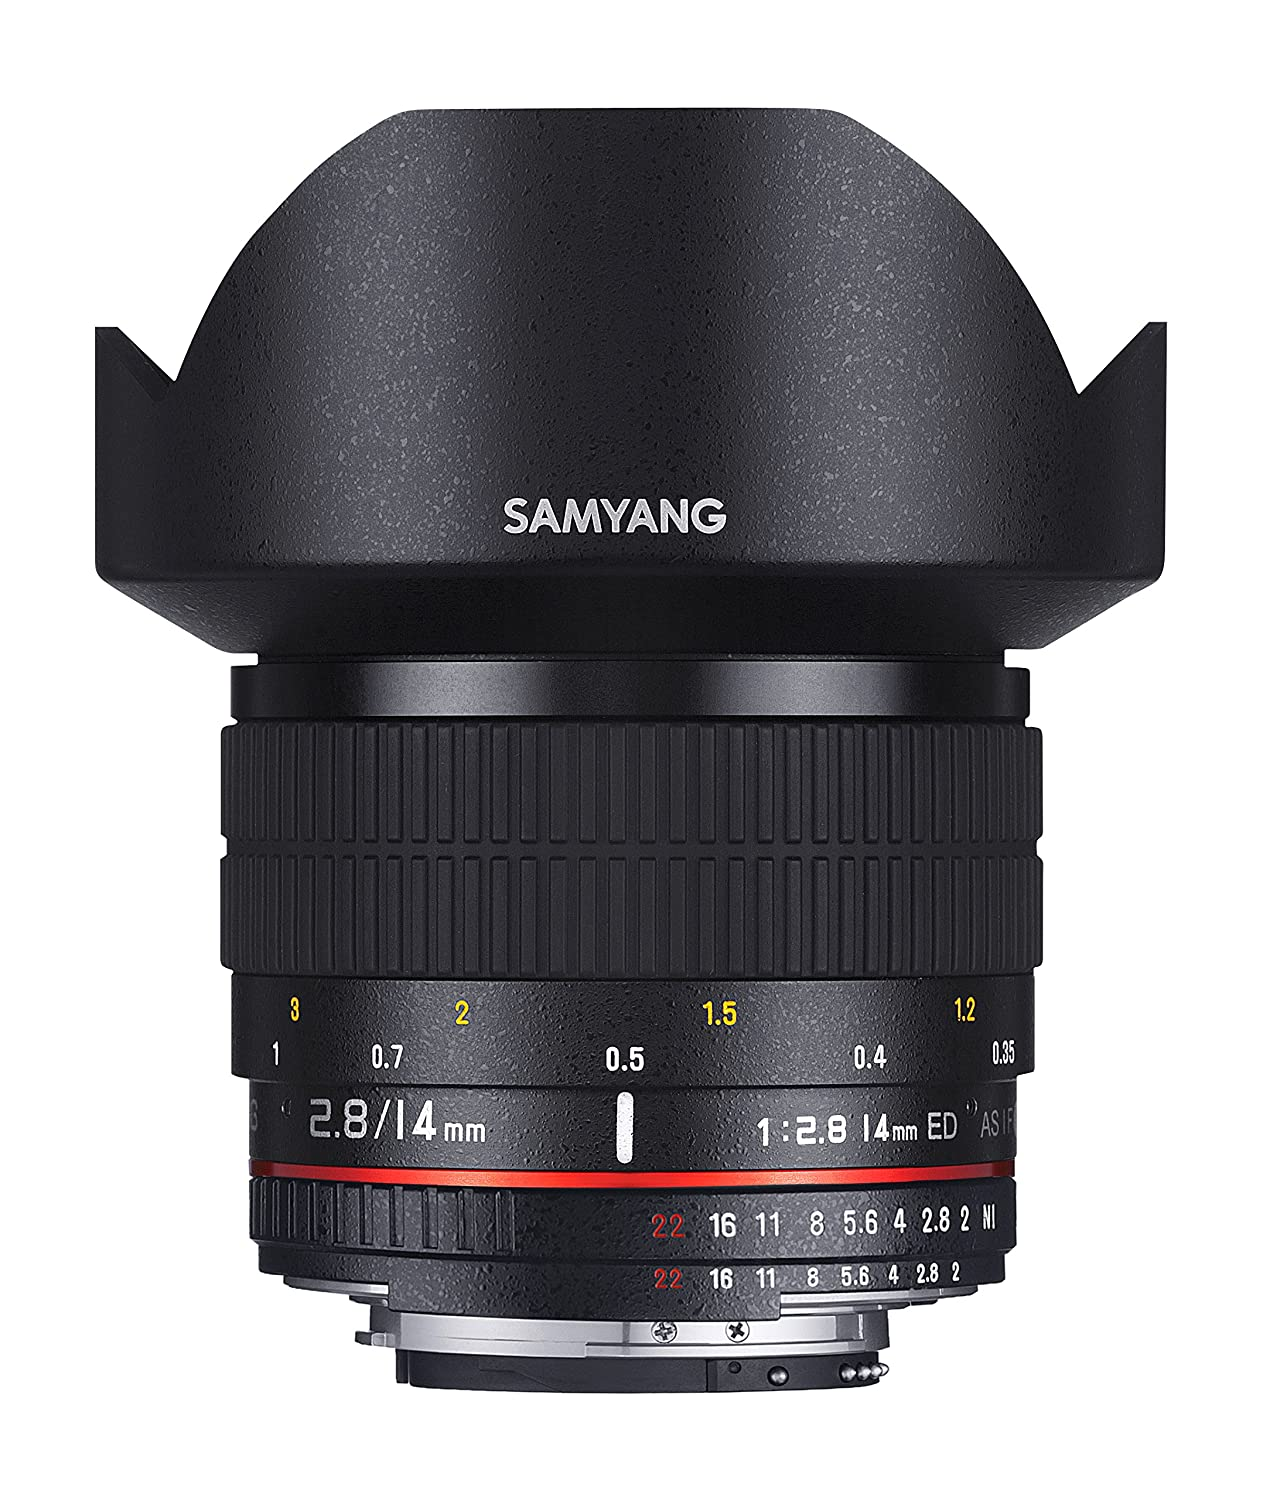 Samyang 14mm f/2.8 IF ED UMC per Nikon